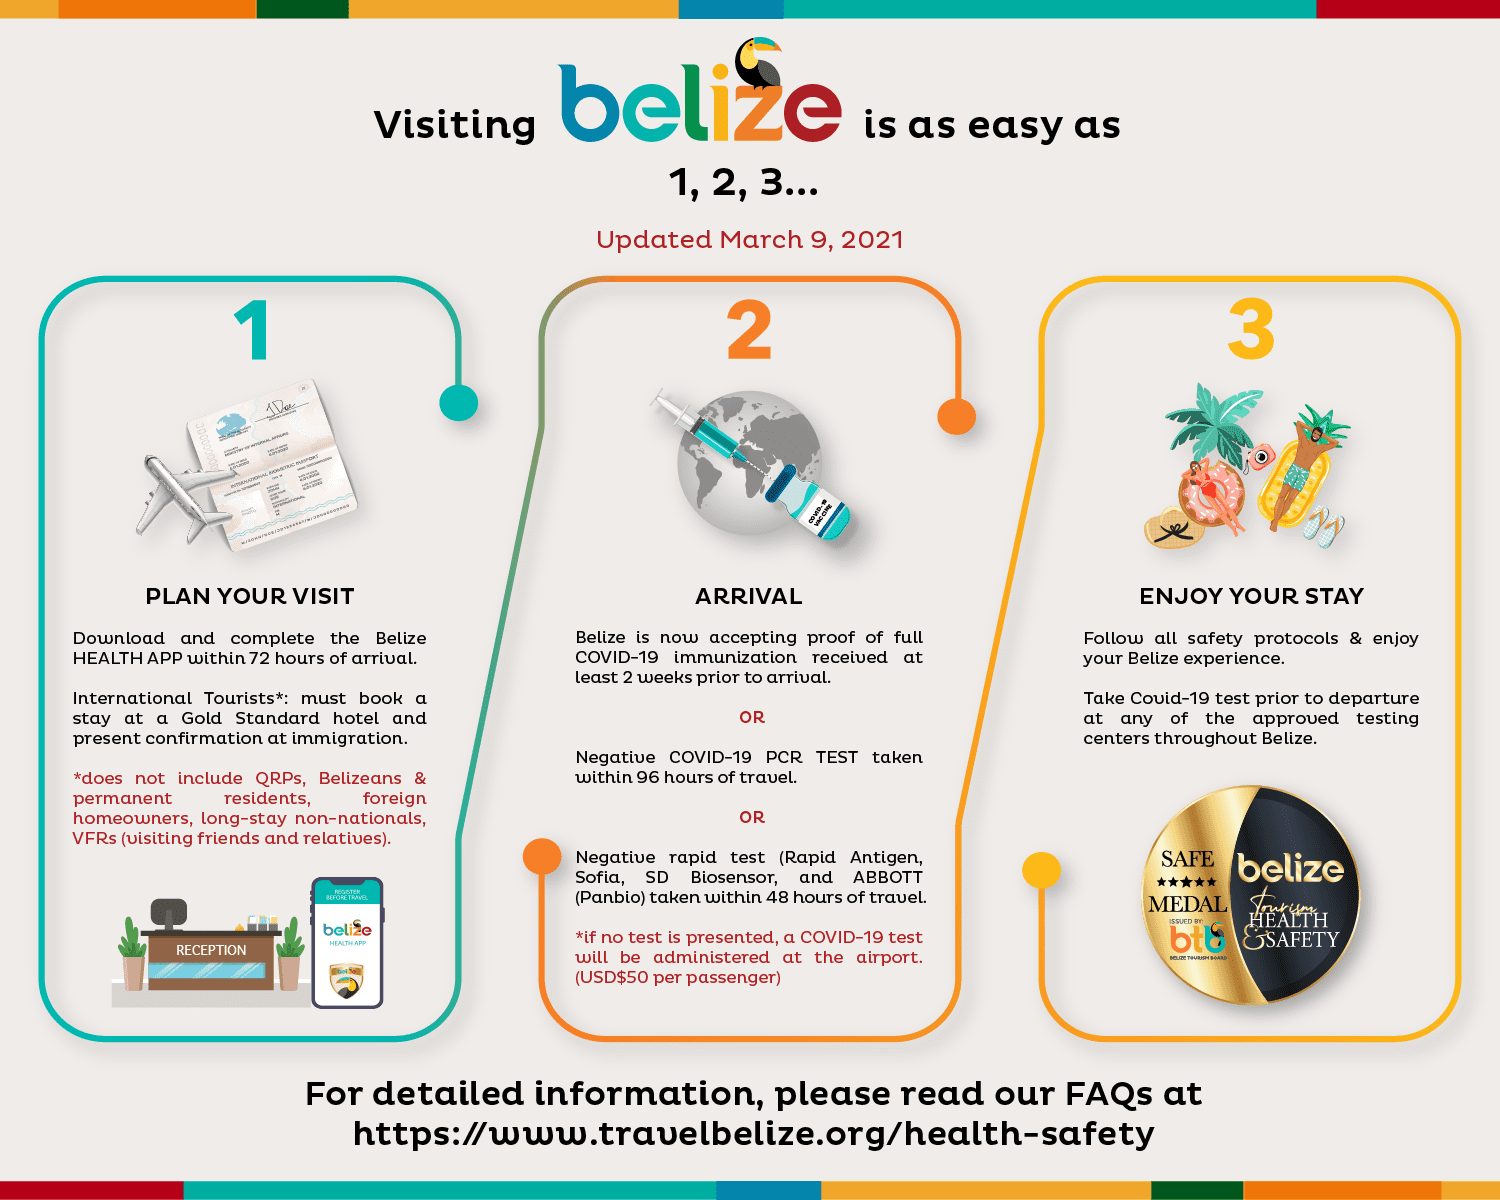 UPDATED-ENTRY-REQUIRements belize